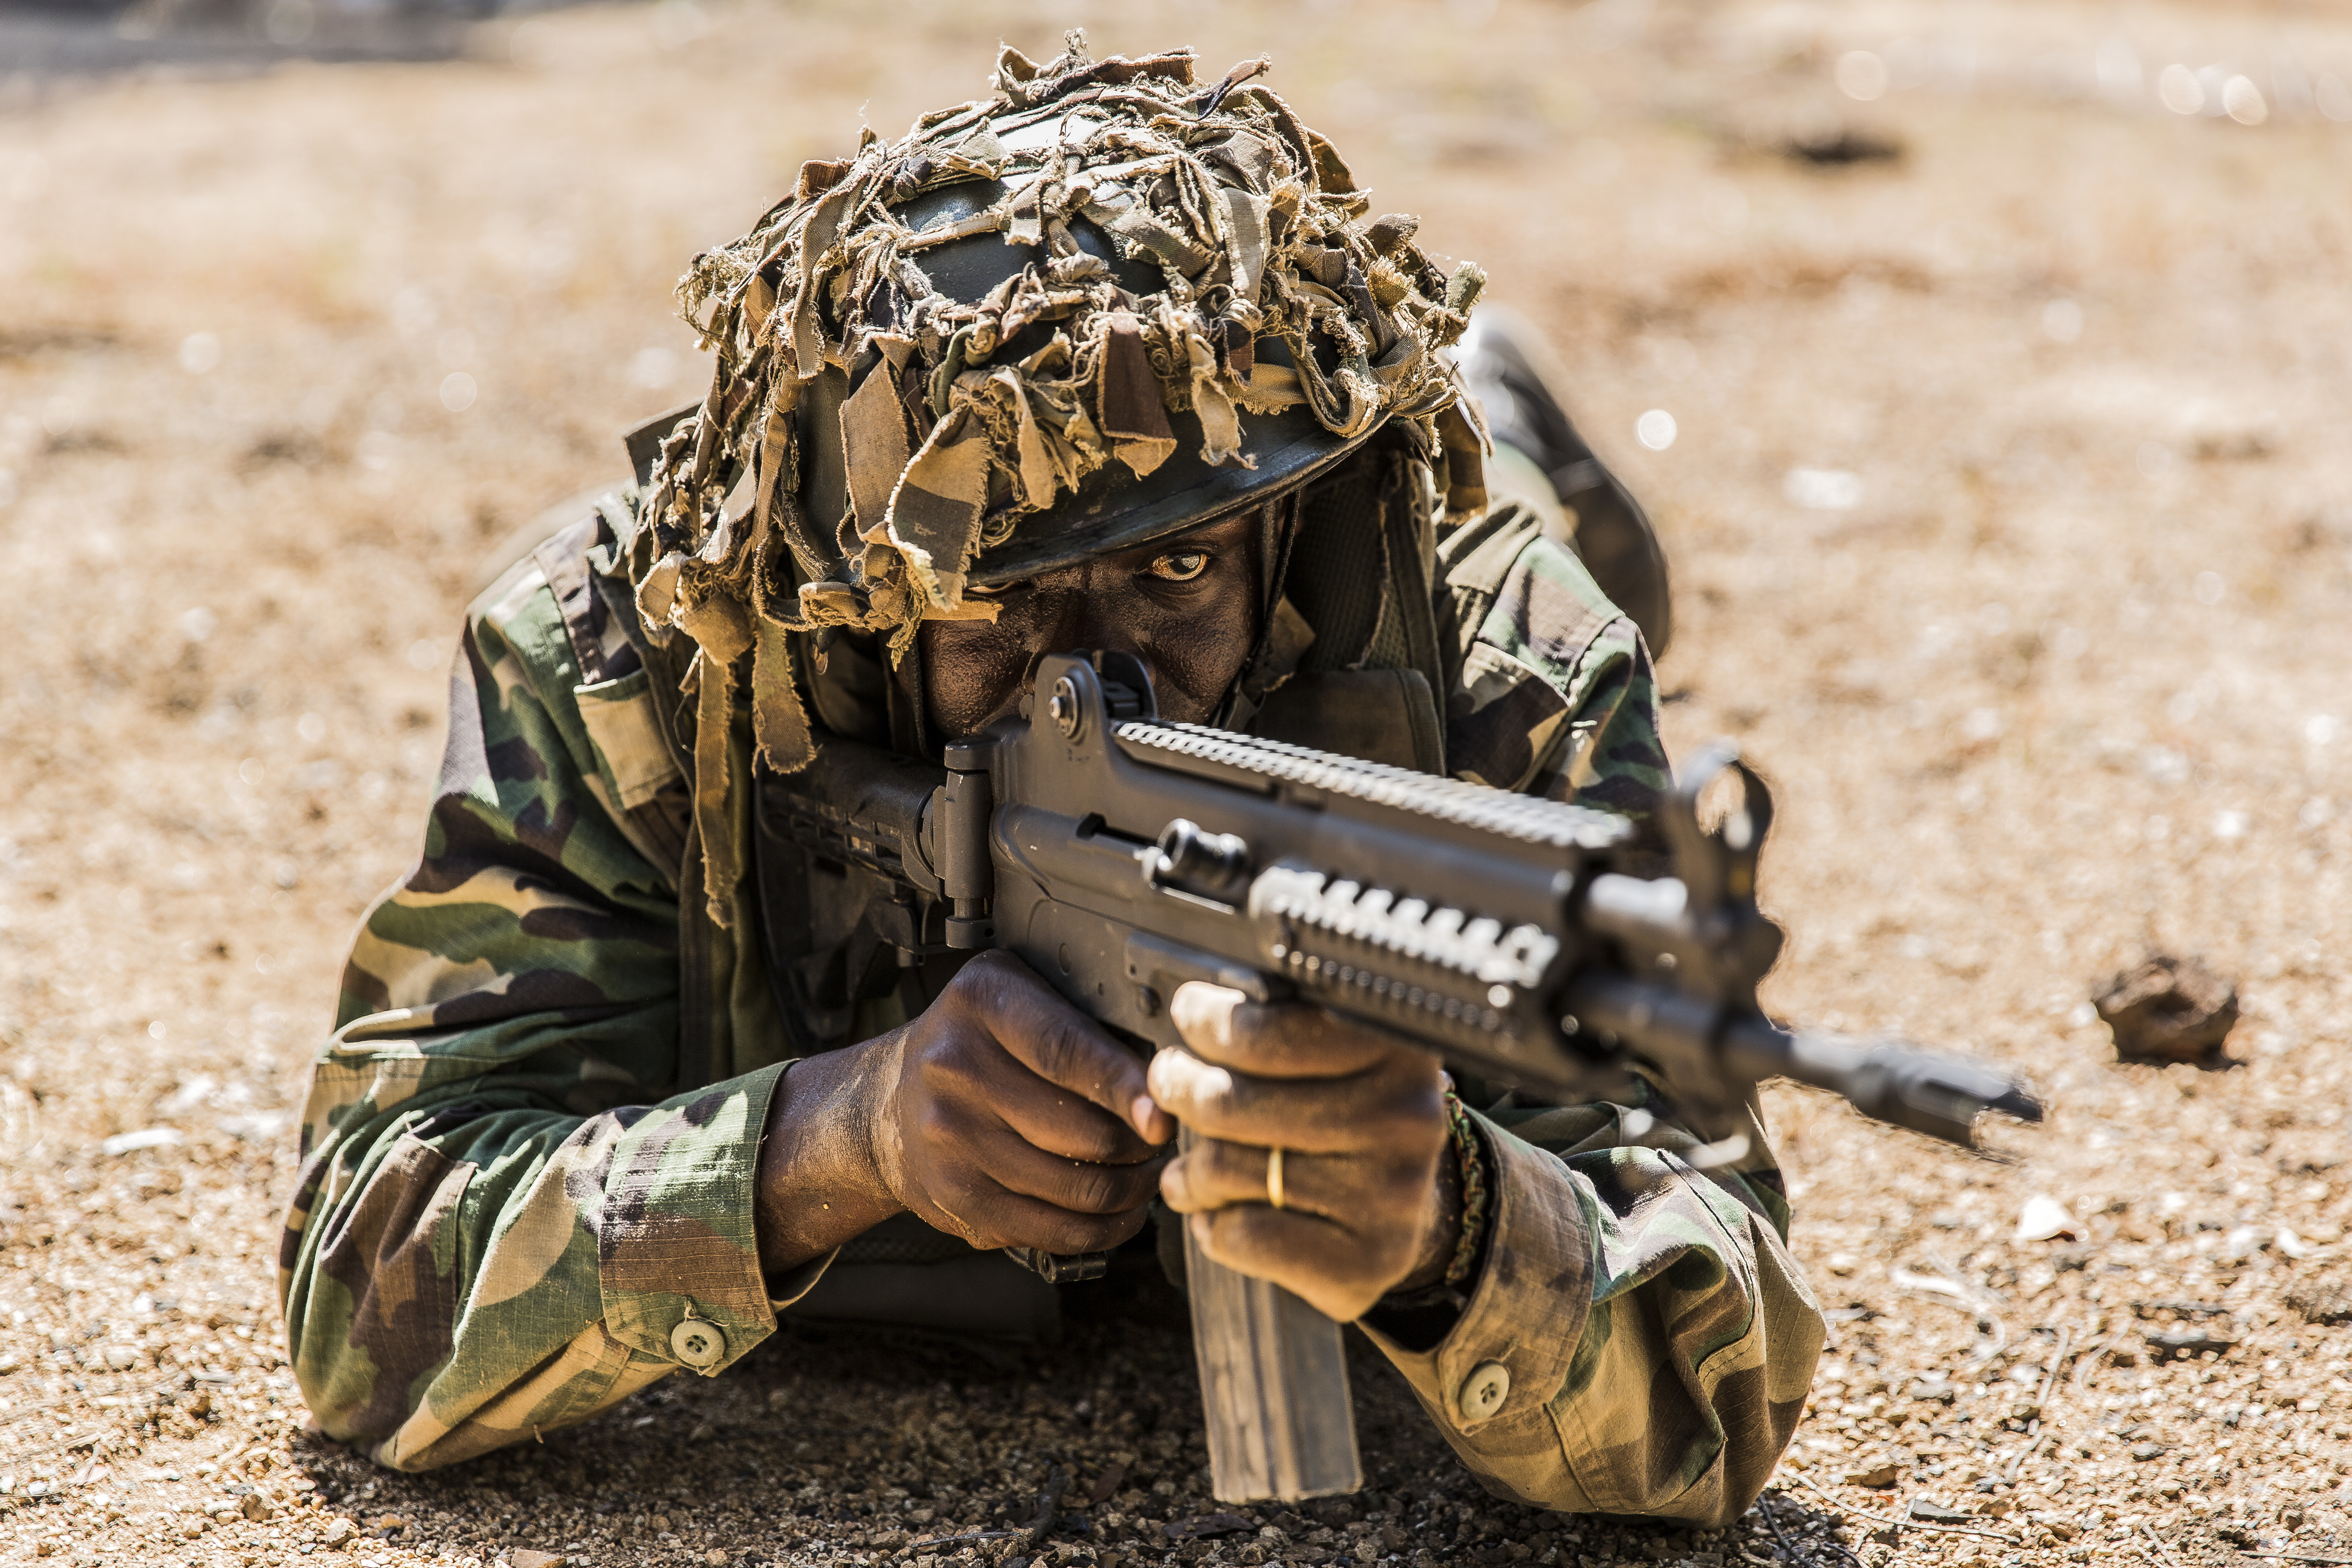 A Malawi Defence Force soldier keeps his sights downrange during a final exercise to conclude a pre-deployment Malawi Battalion Training Course in Malawi, Africa, May 31, 2018. U.S. Africa Command Senior Enlisted Leader Command Chief Master Sgt. Ramon Colon-Lopez and his team traveled to the MALBAT Training Site to follow-up on issues addressed by the MDF during the Africa Senior Enlisted Leader Conference in November 2017, and to assess the MDF's capability to train and sustain Peace Keeping Operations Forces.